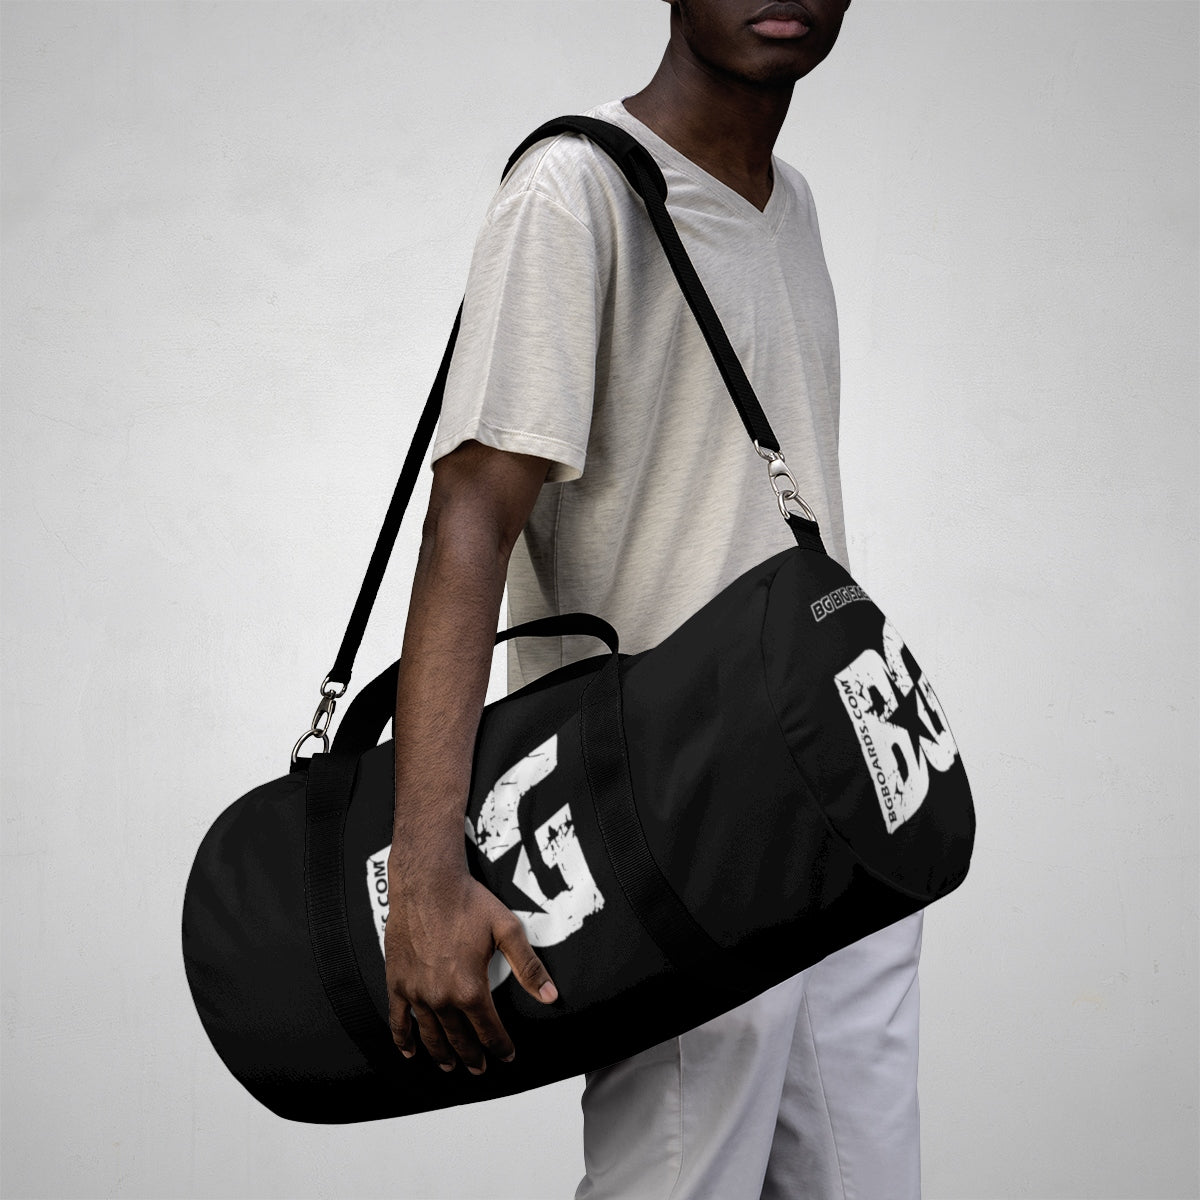 BG BIG SACK BLACK DUFFLE BAG